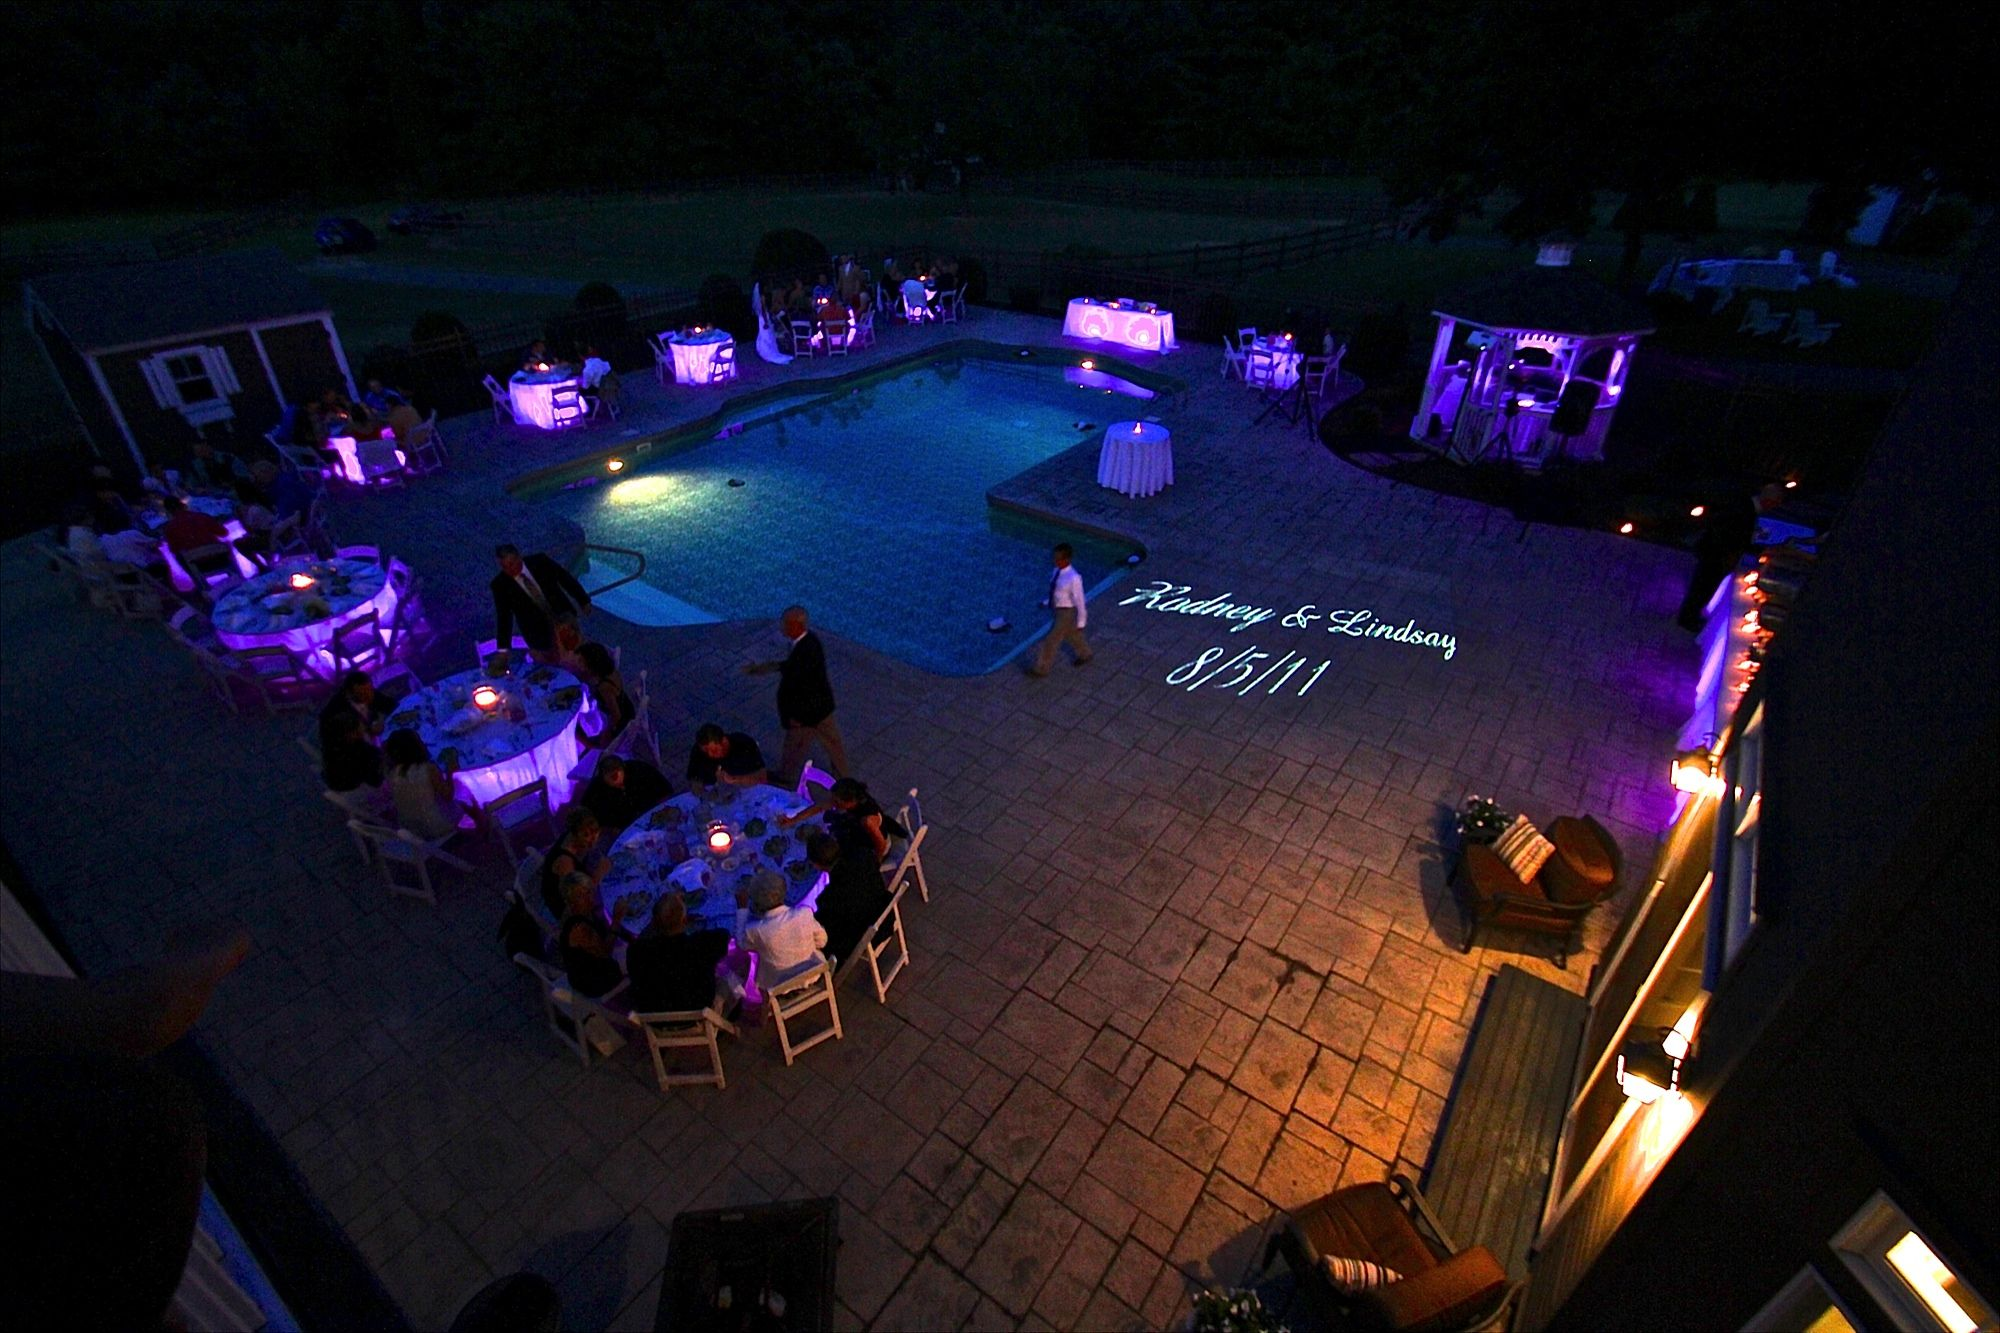 Outdoor wedding lighting - Awesome Idea To Use Table Uplighting For This Outdoor Wedding